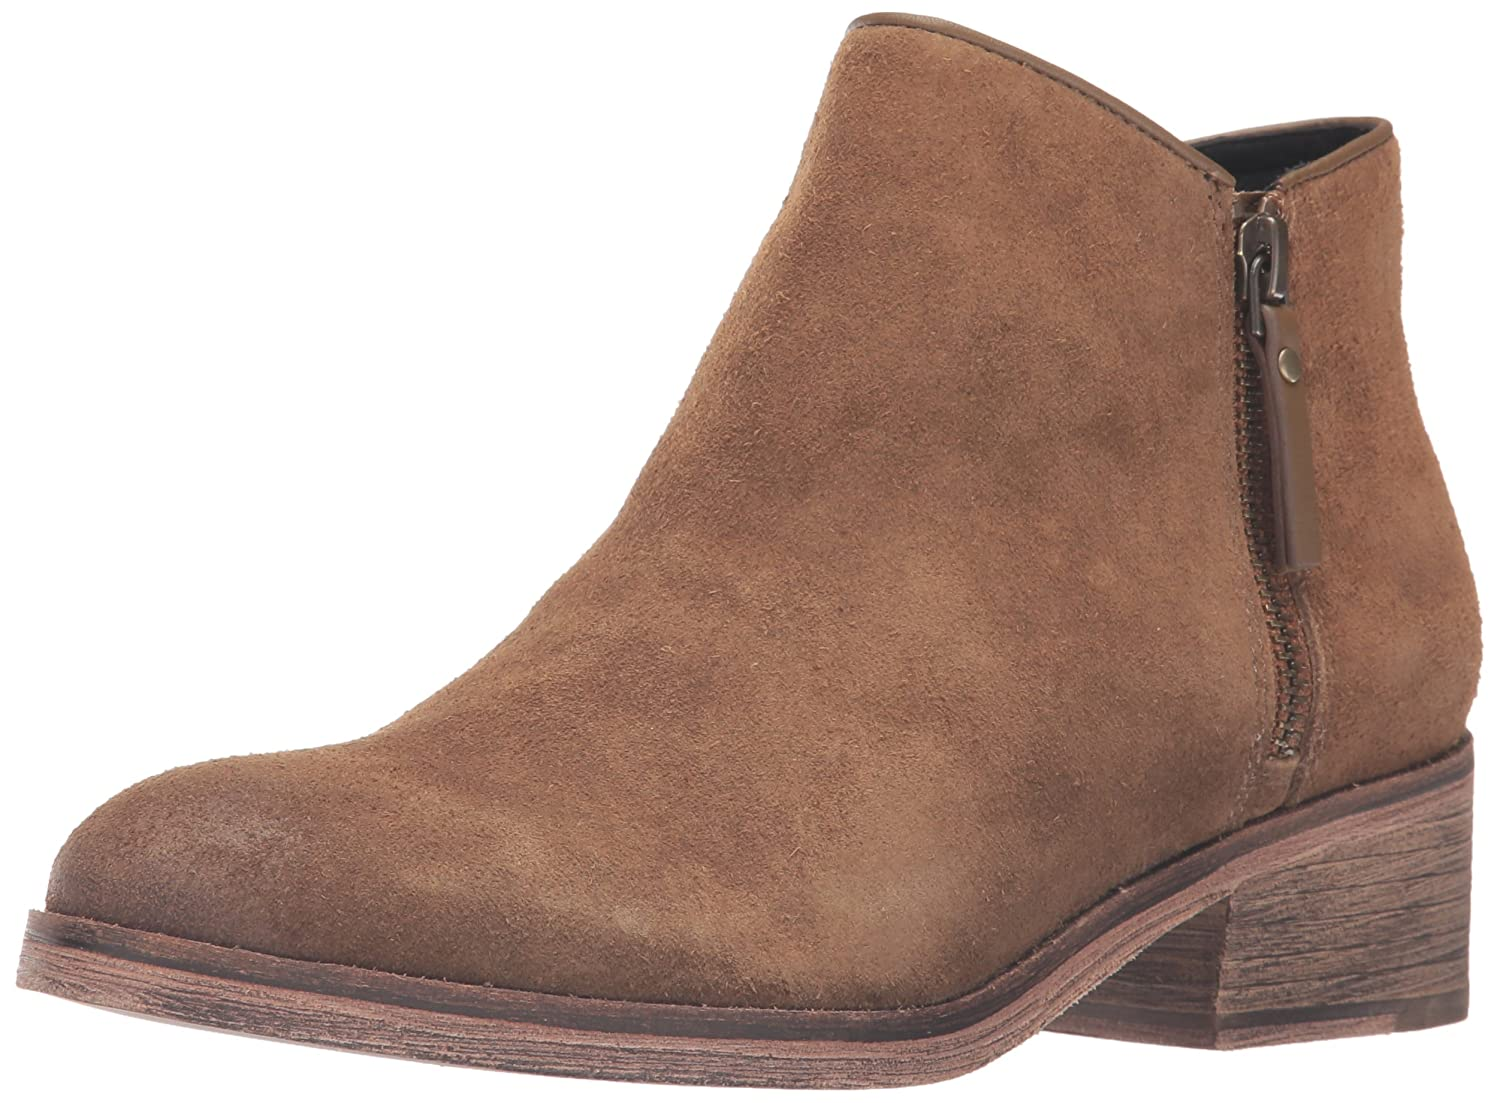 Cole Haan Women's Hayes Flat Ankle Bootie B01IQP2EUE 8 B(M) US|Olive Suede